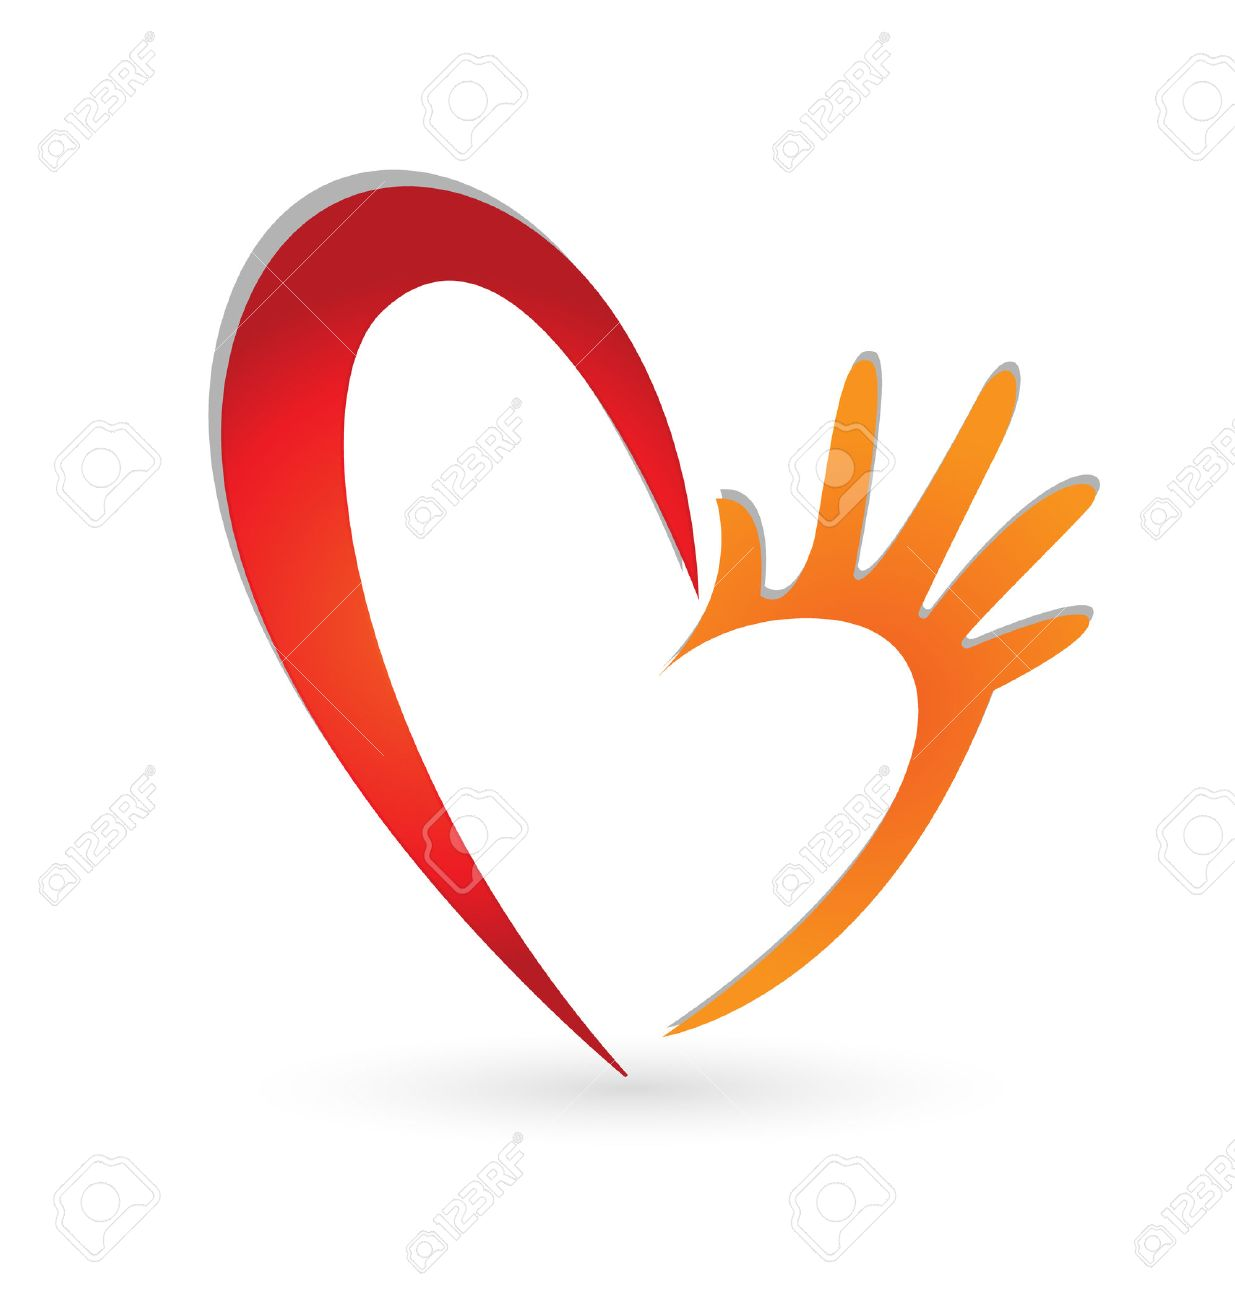 Heart Heart Hands Icon